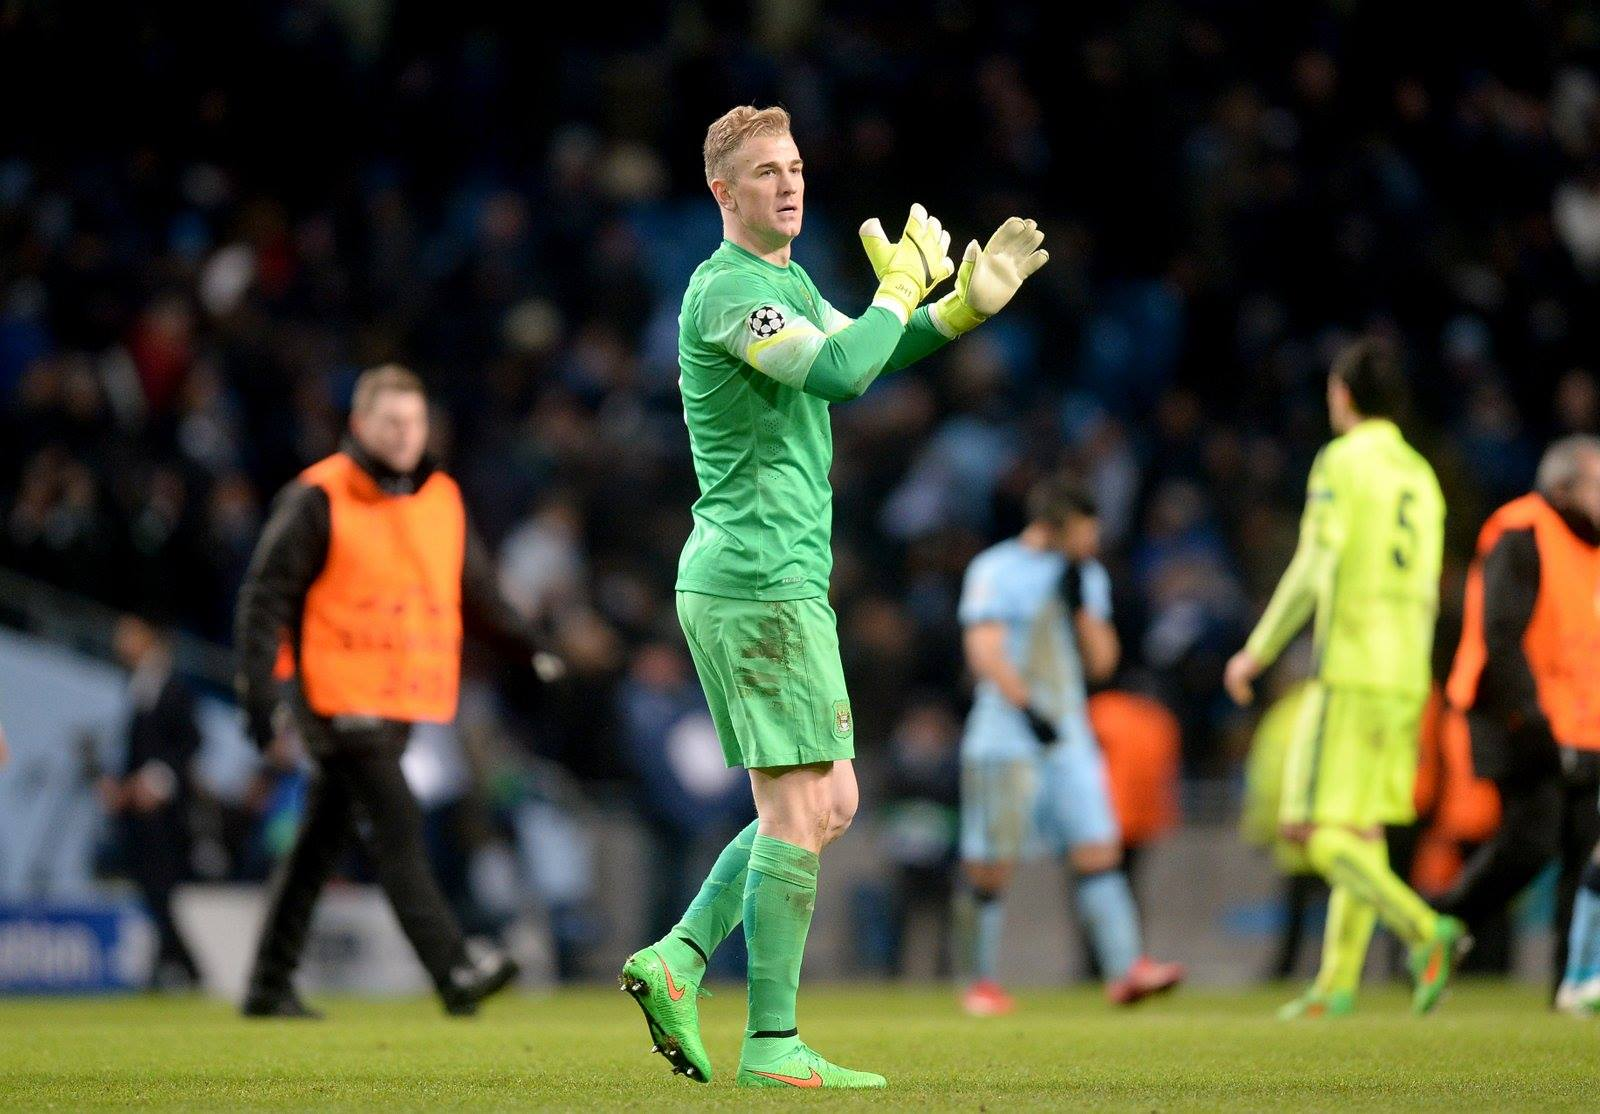 Let's hear it for the boys - Joe returns the appreciation to City's grateful fans. Courtesy@MCFC